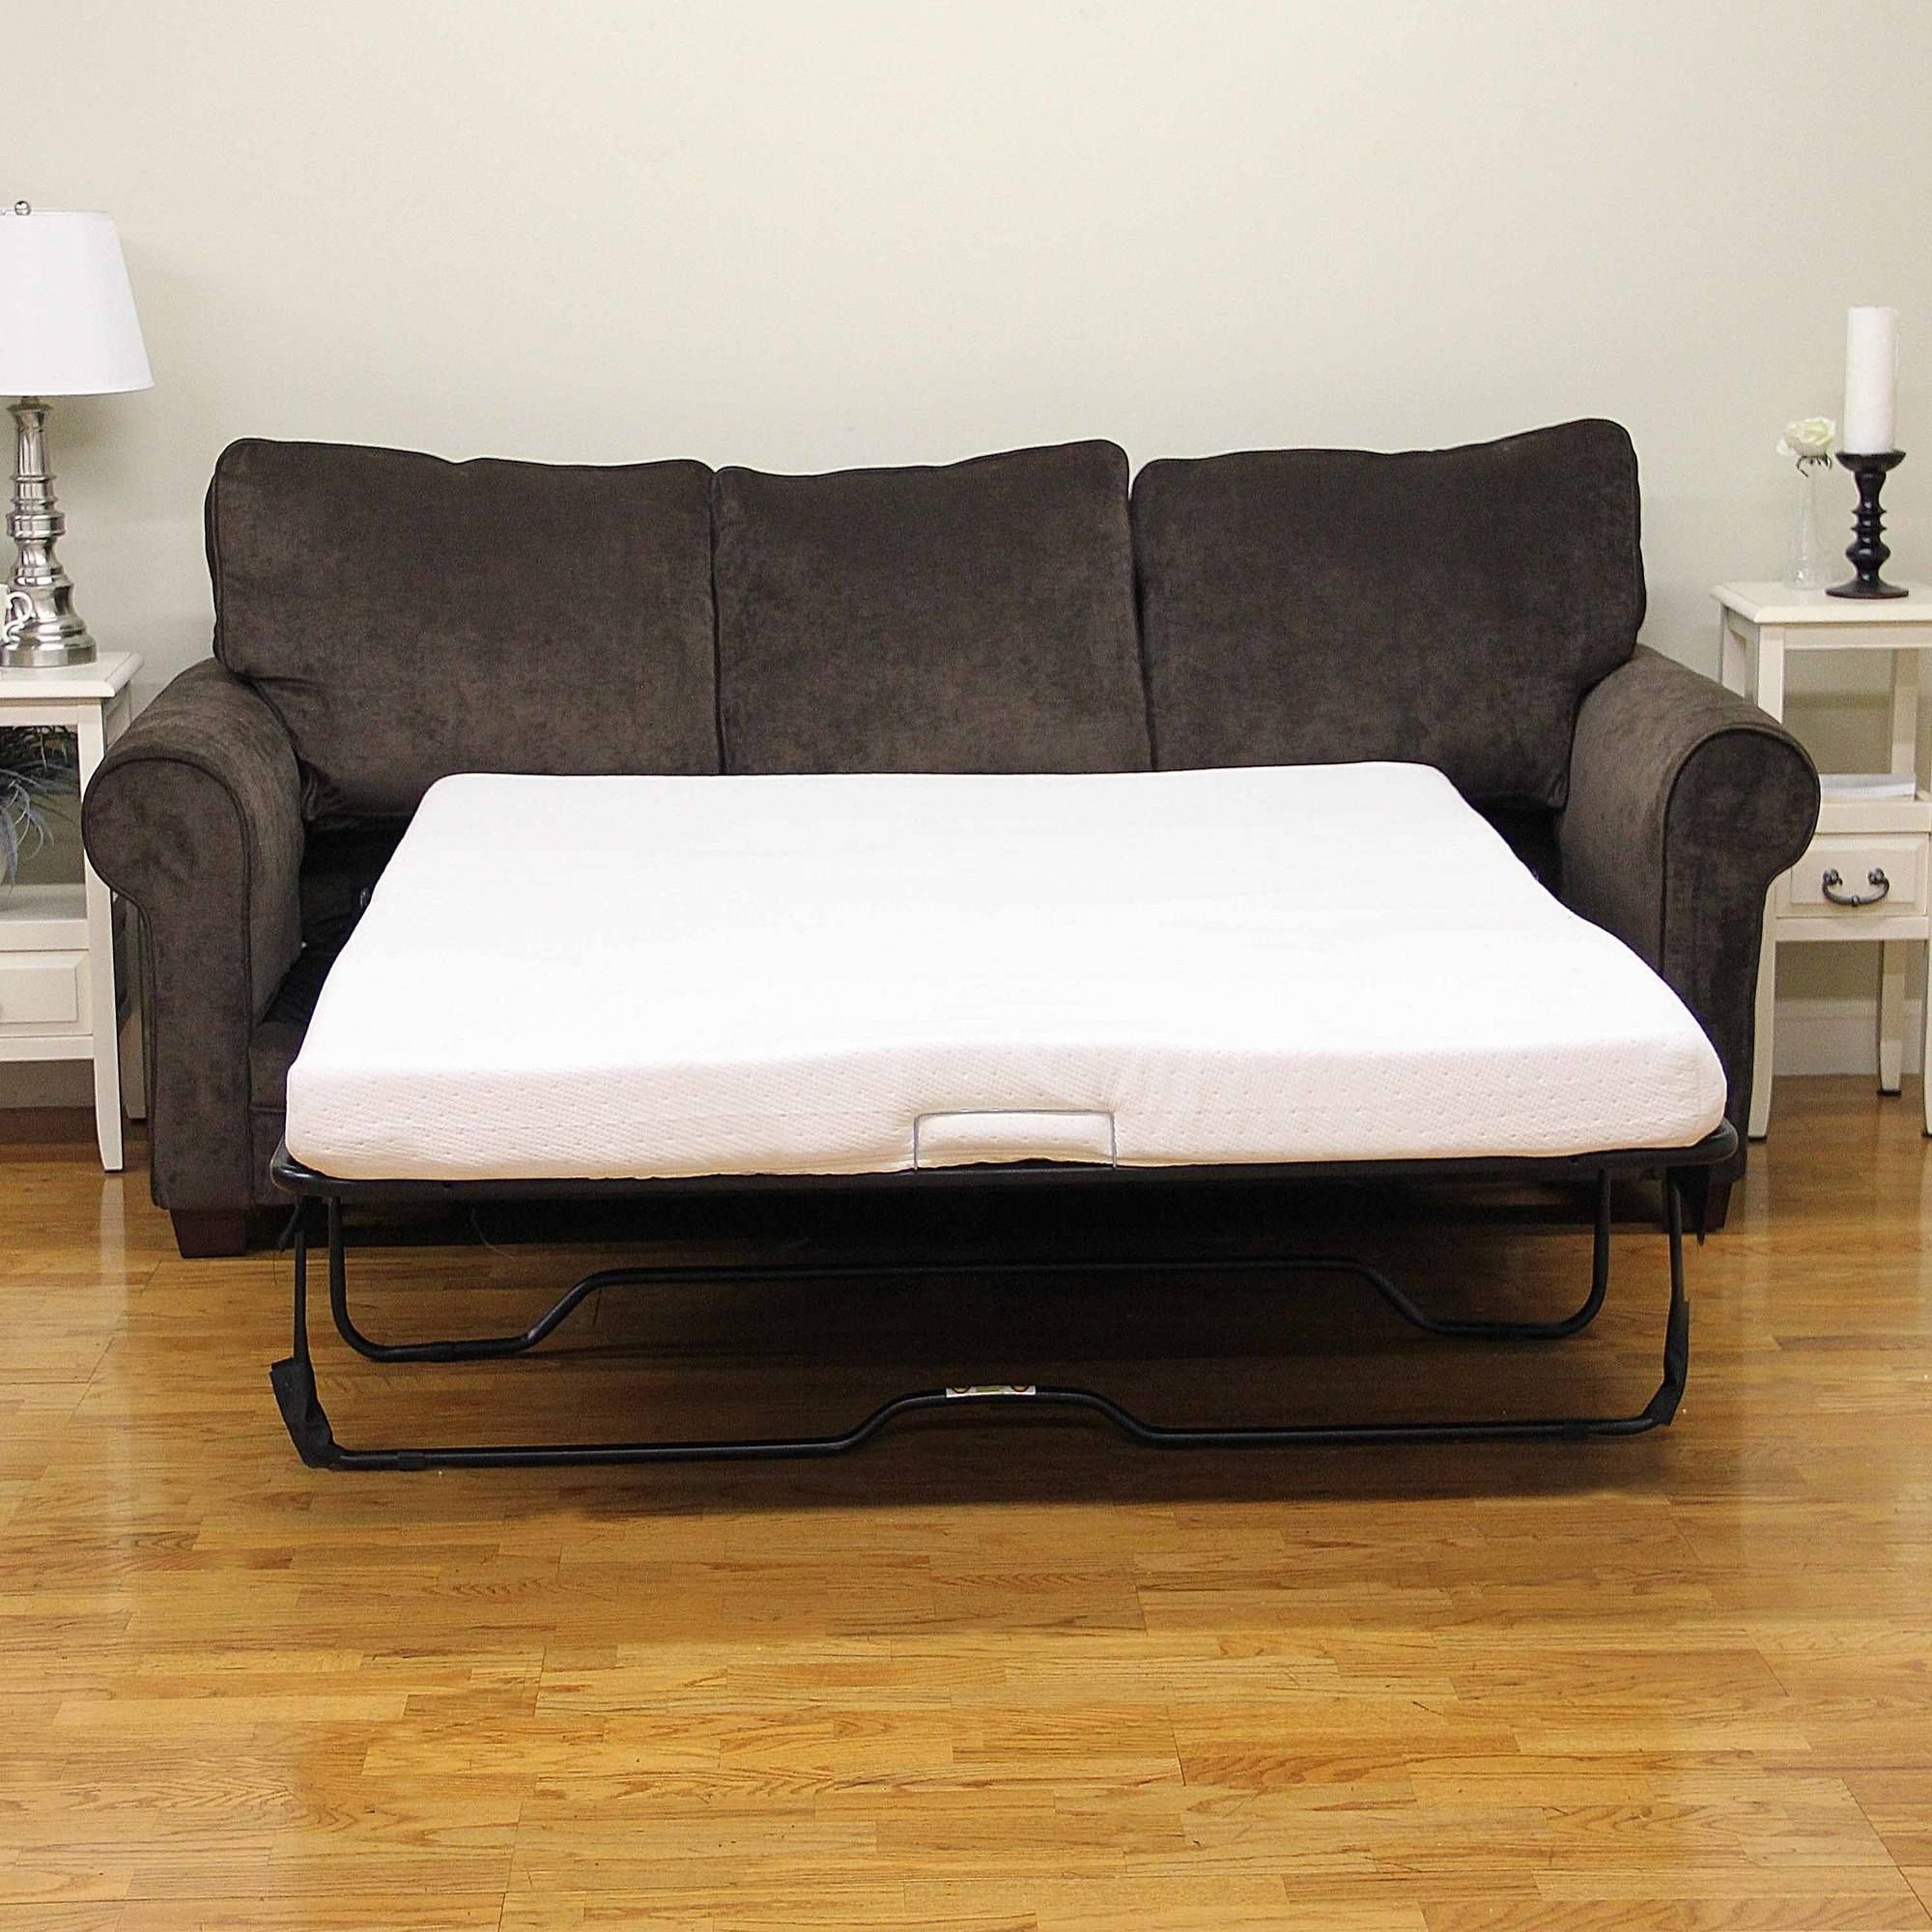 mattress toppers for sleeper sofas http tmidb com pinterest rh pinterest com  best mattress topper for sofa sleeper